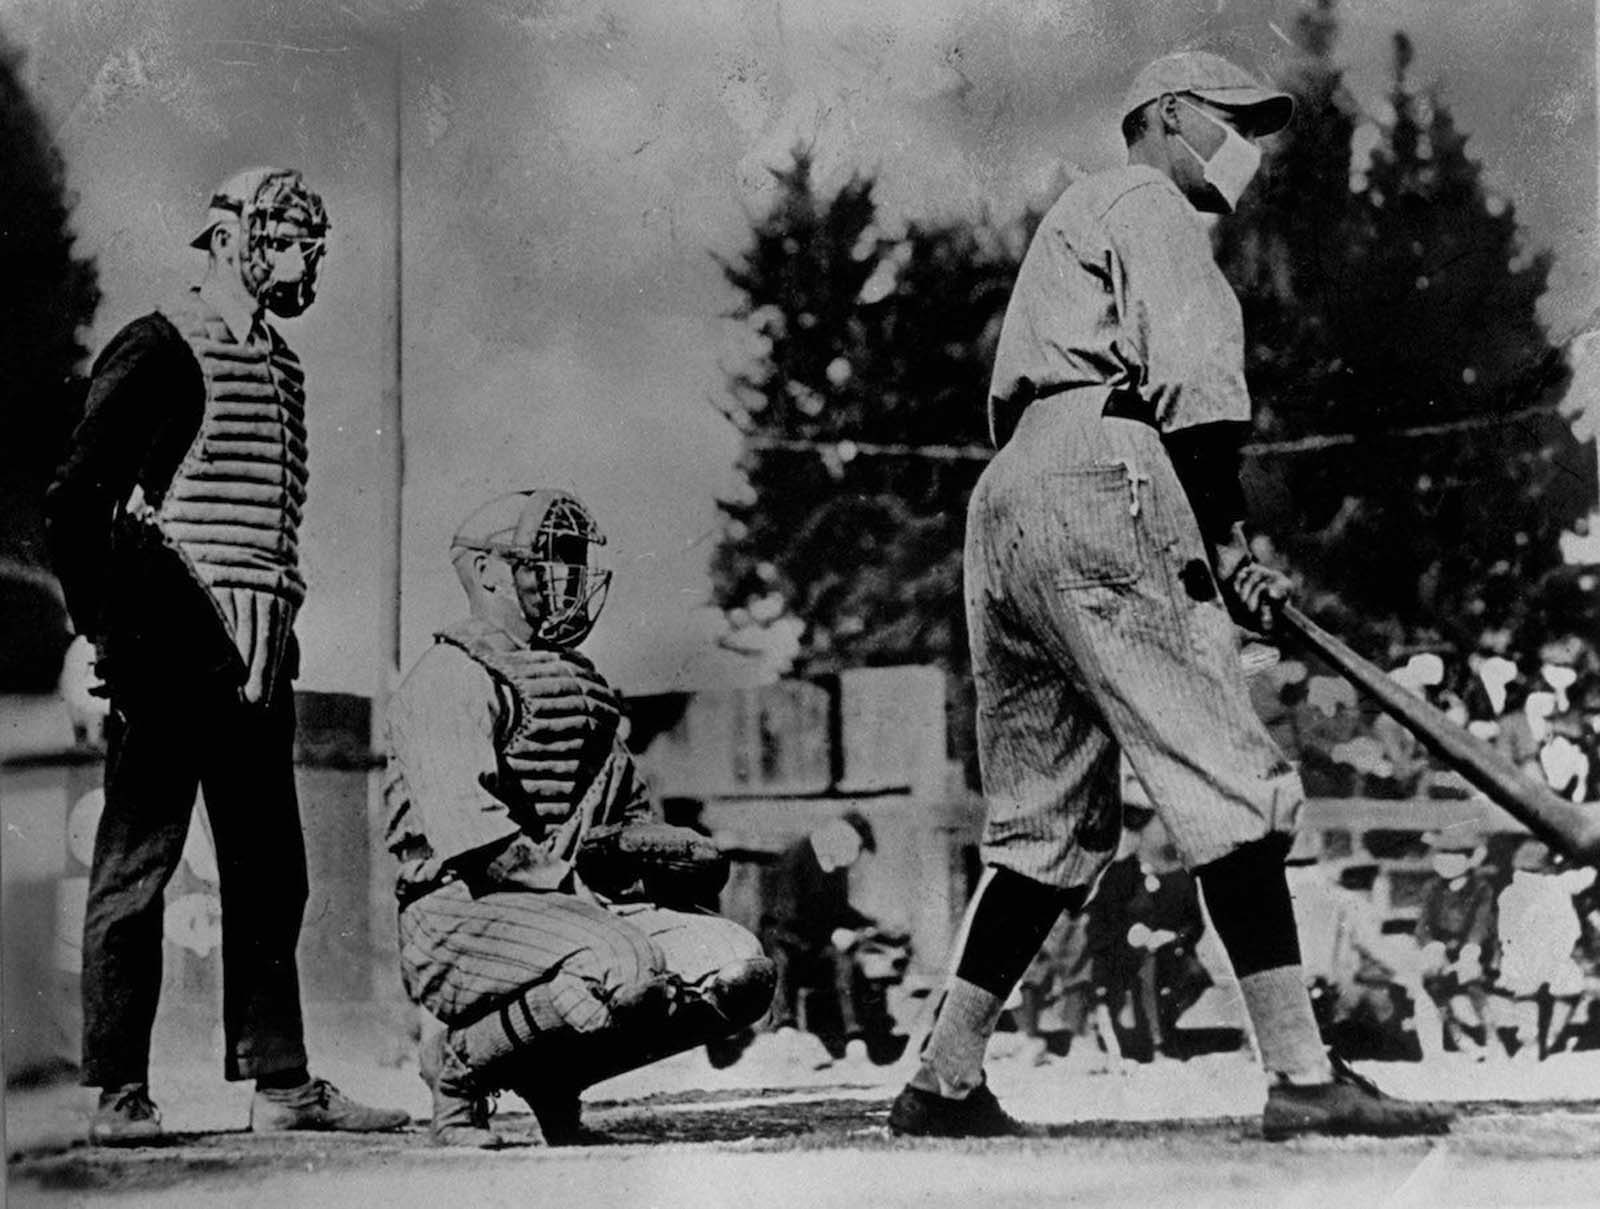 Unident baseball players, one batting and one catching, plus an umpire behind the plate, wear flu masks. 1918.